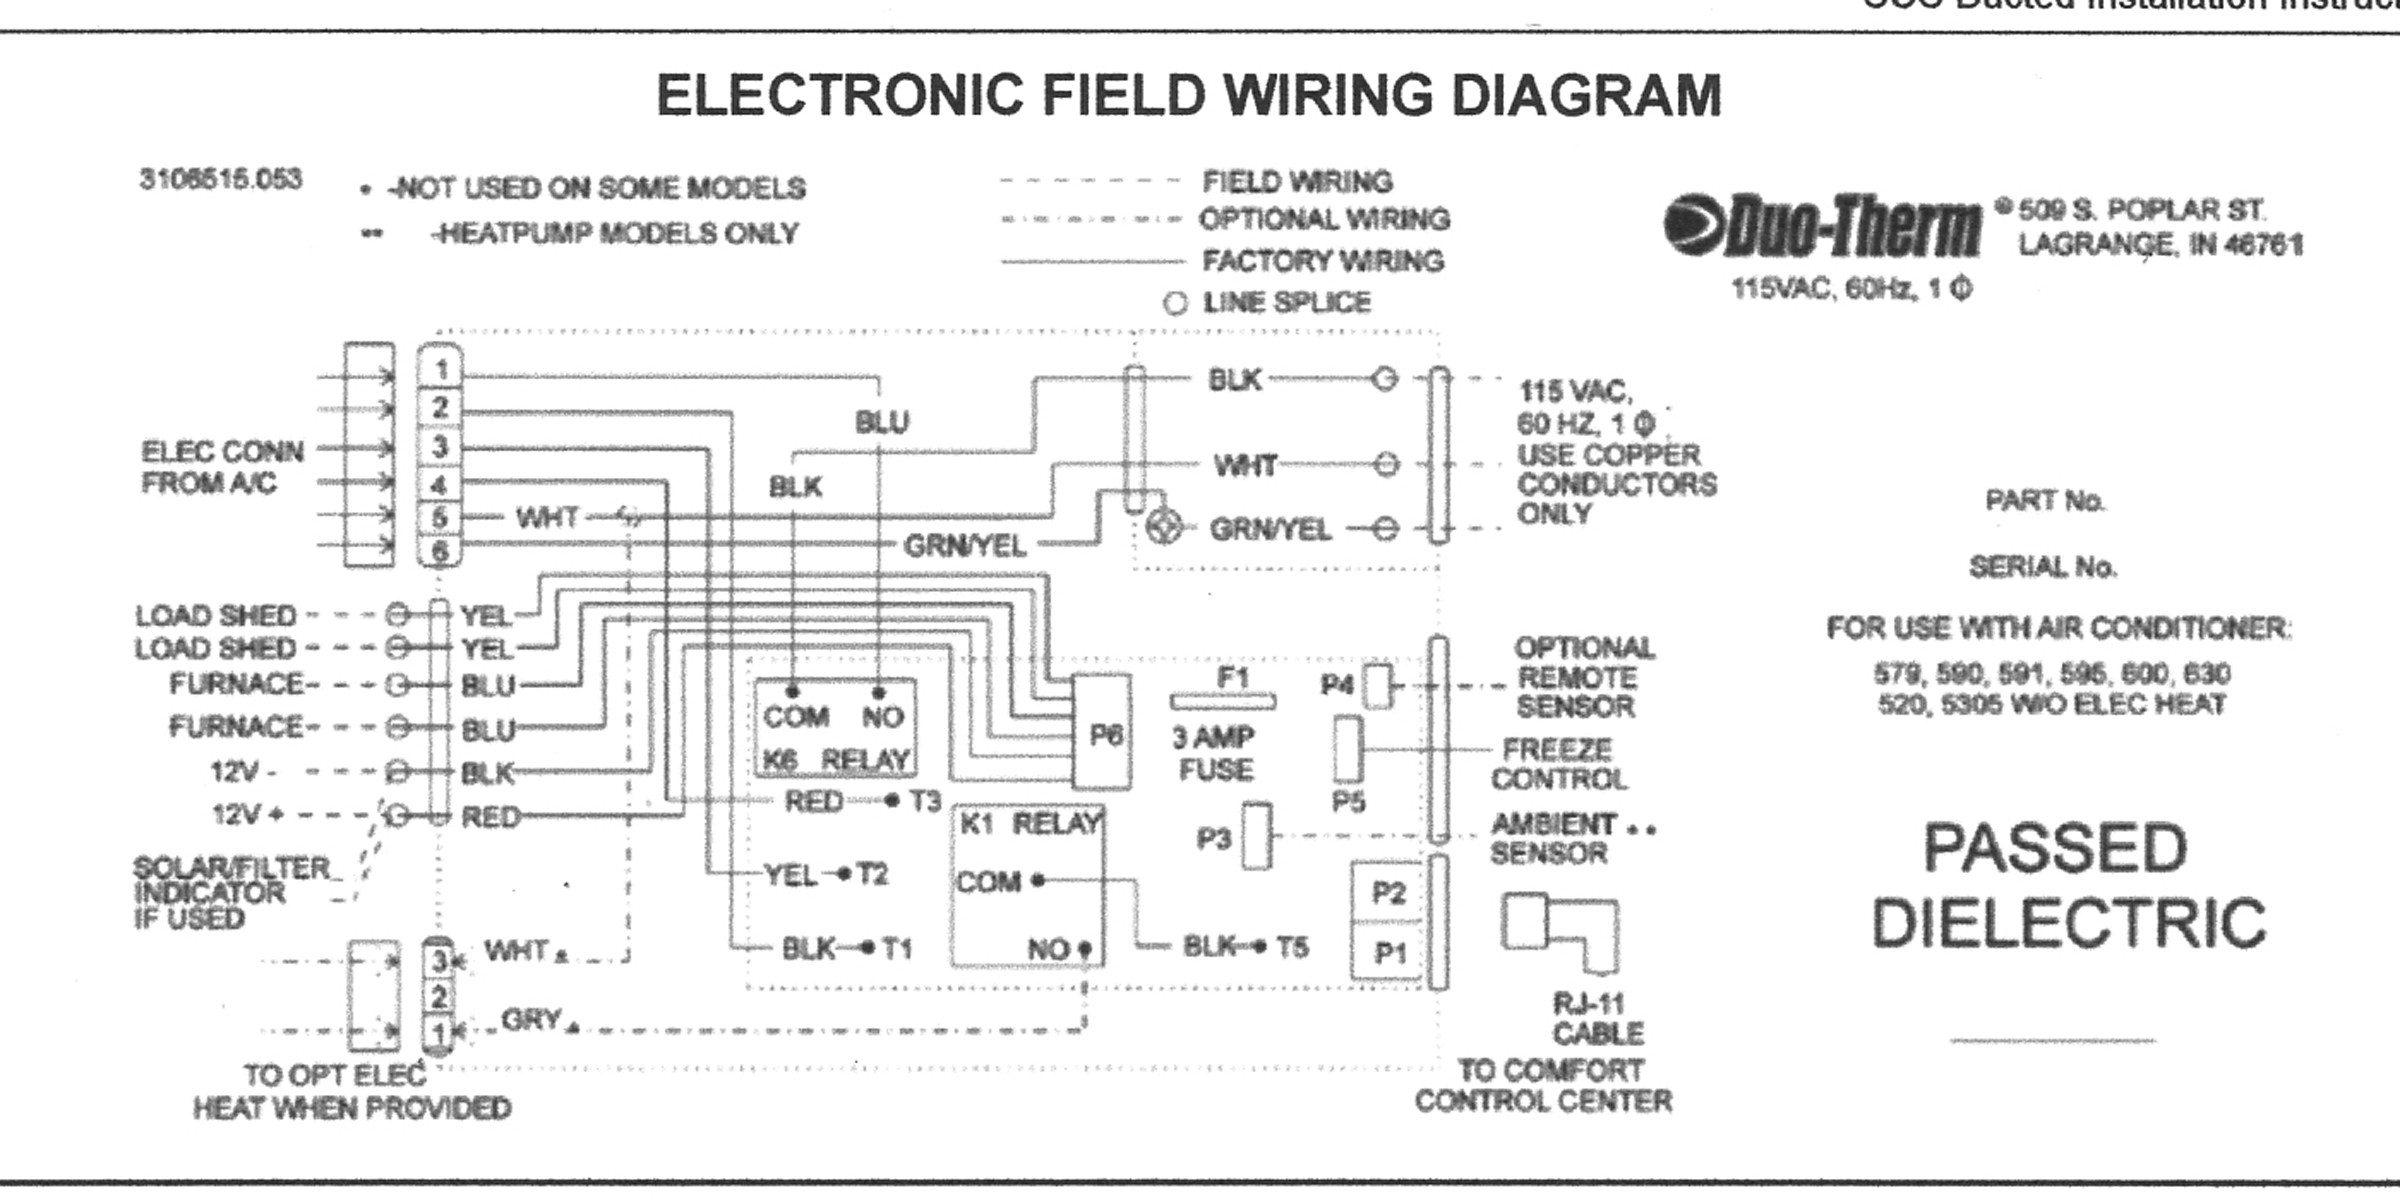 dometic rv thermostat wiring diagram | free wiring diagram digital rv thermostat wiring diagram